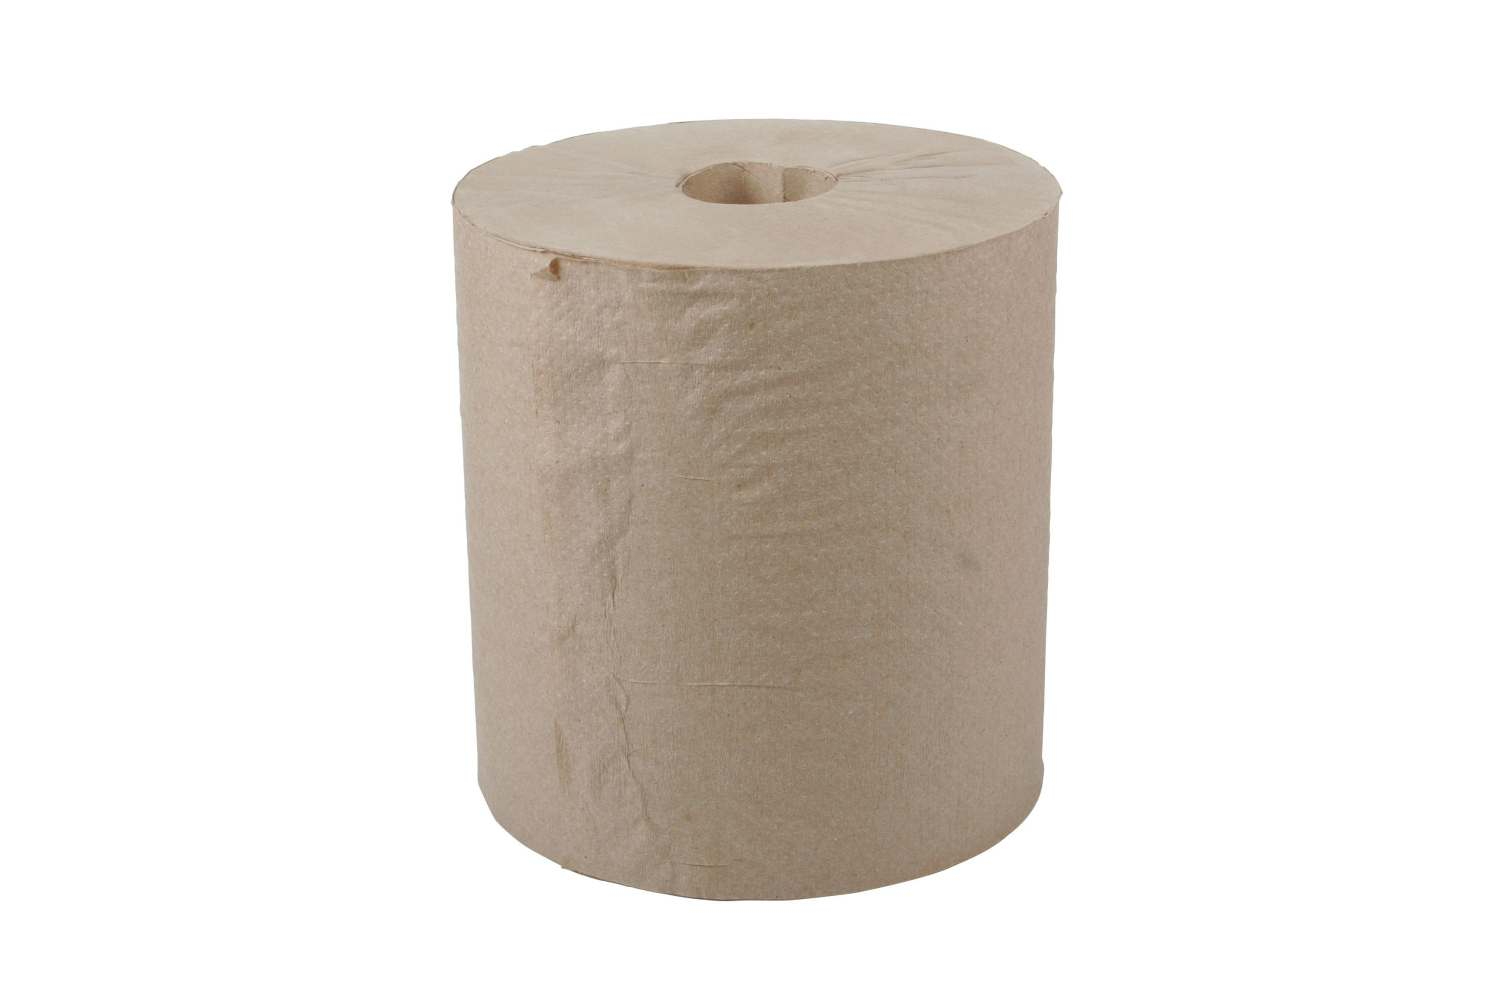 Medline Standard Roll Towel - Paper, 1Ply, 7.875X800', Natural, Box of 6 - Model NONPBM800N